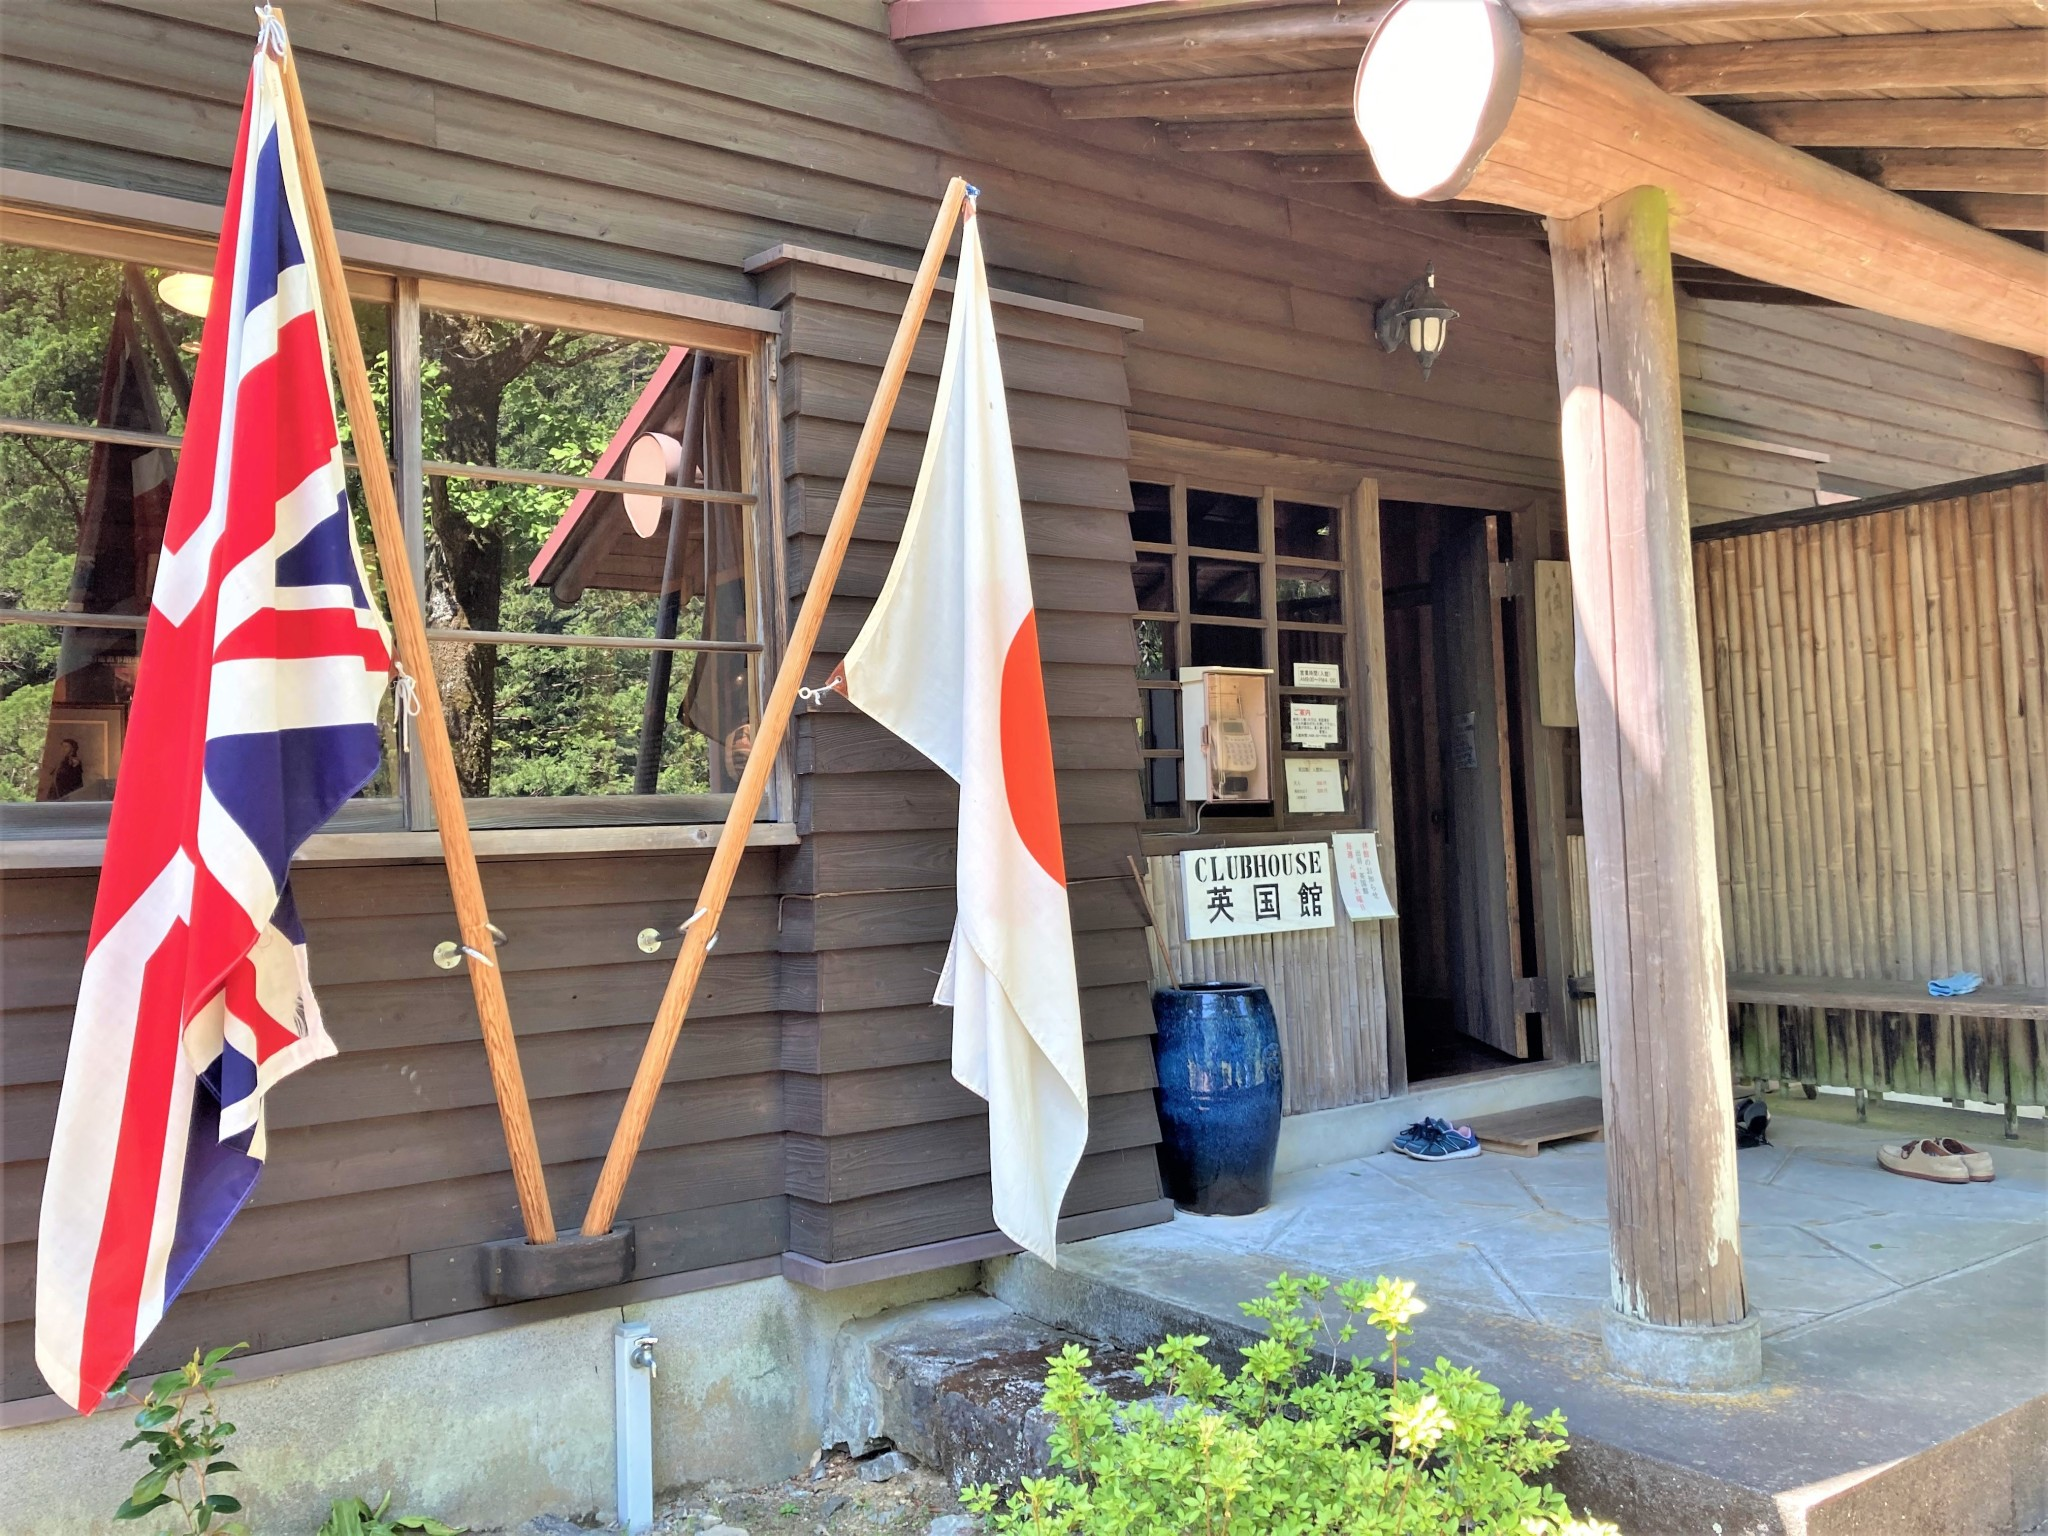 The national flags of Great Britain and Japan in front of the entrance to the Eikokukan clubhouse in Hinokage, Japan.